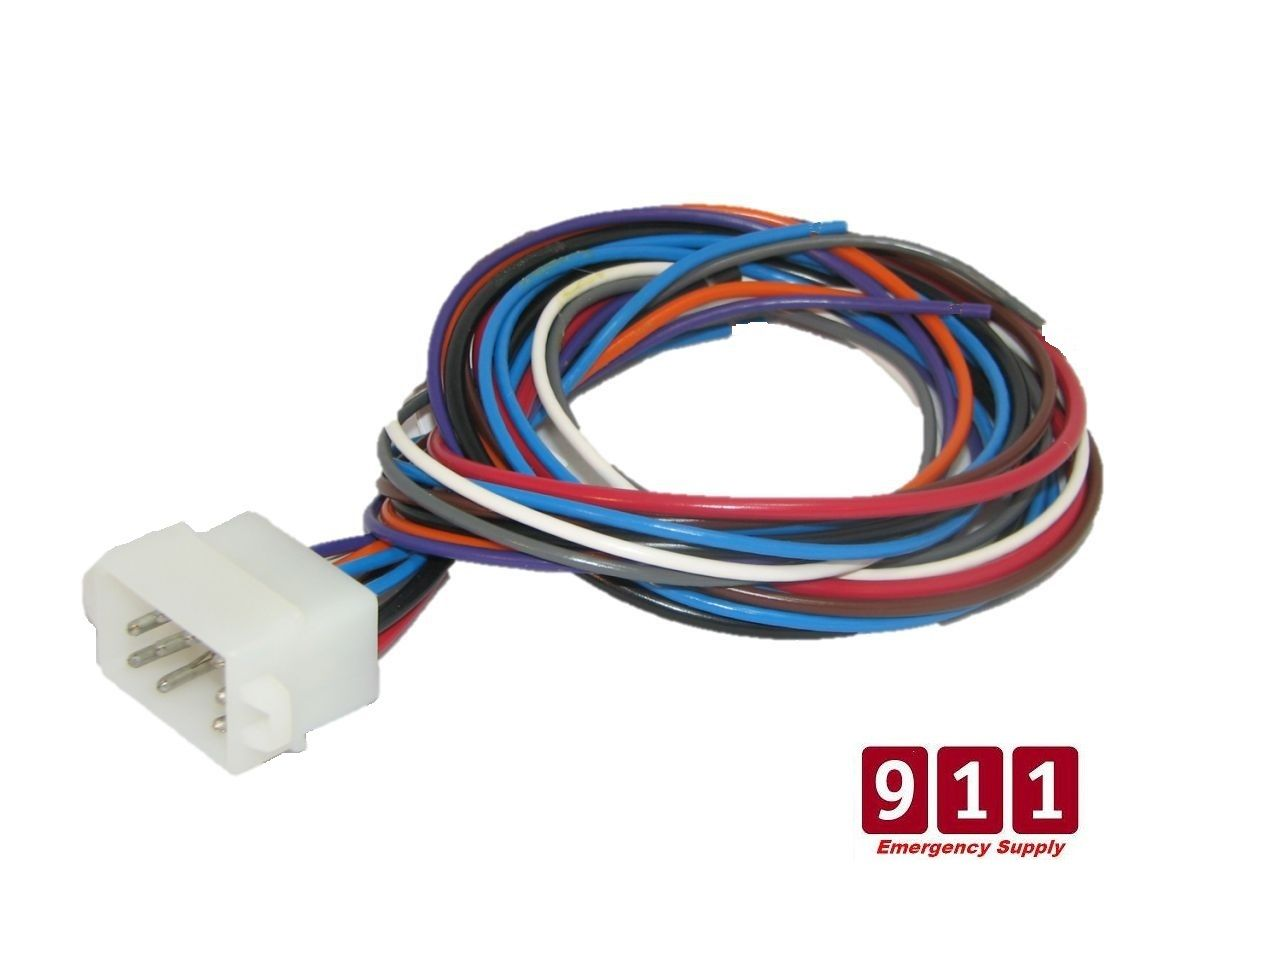 1444789631853_1a whelen galls siren power harness plug cable 12 pin with cord wiring harness for wheelchair lift at reclaimingppi.co